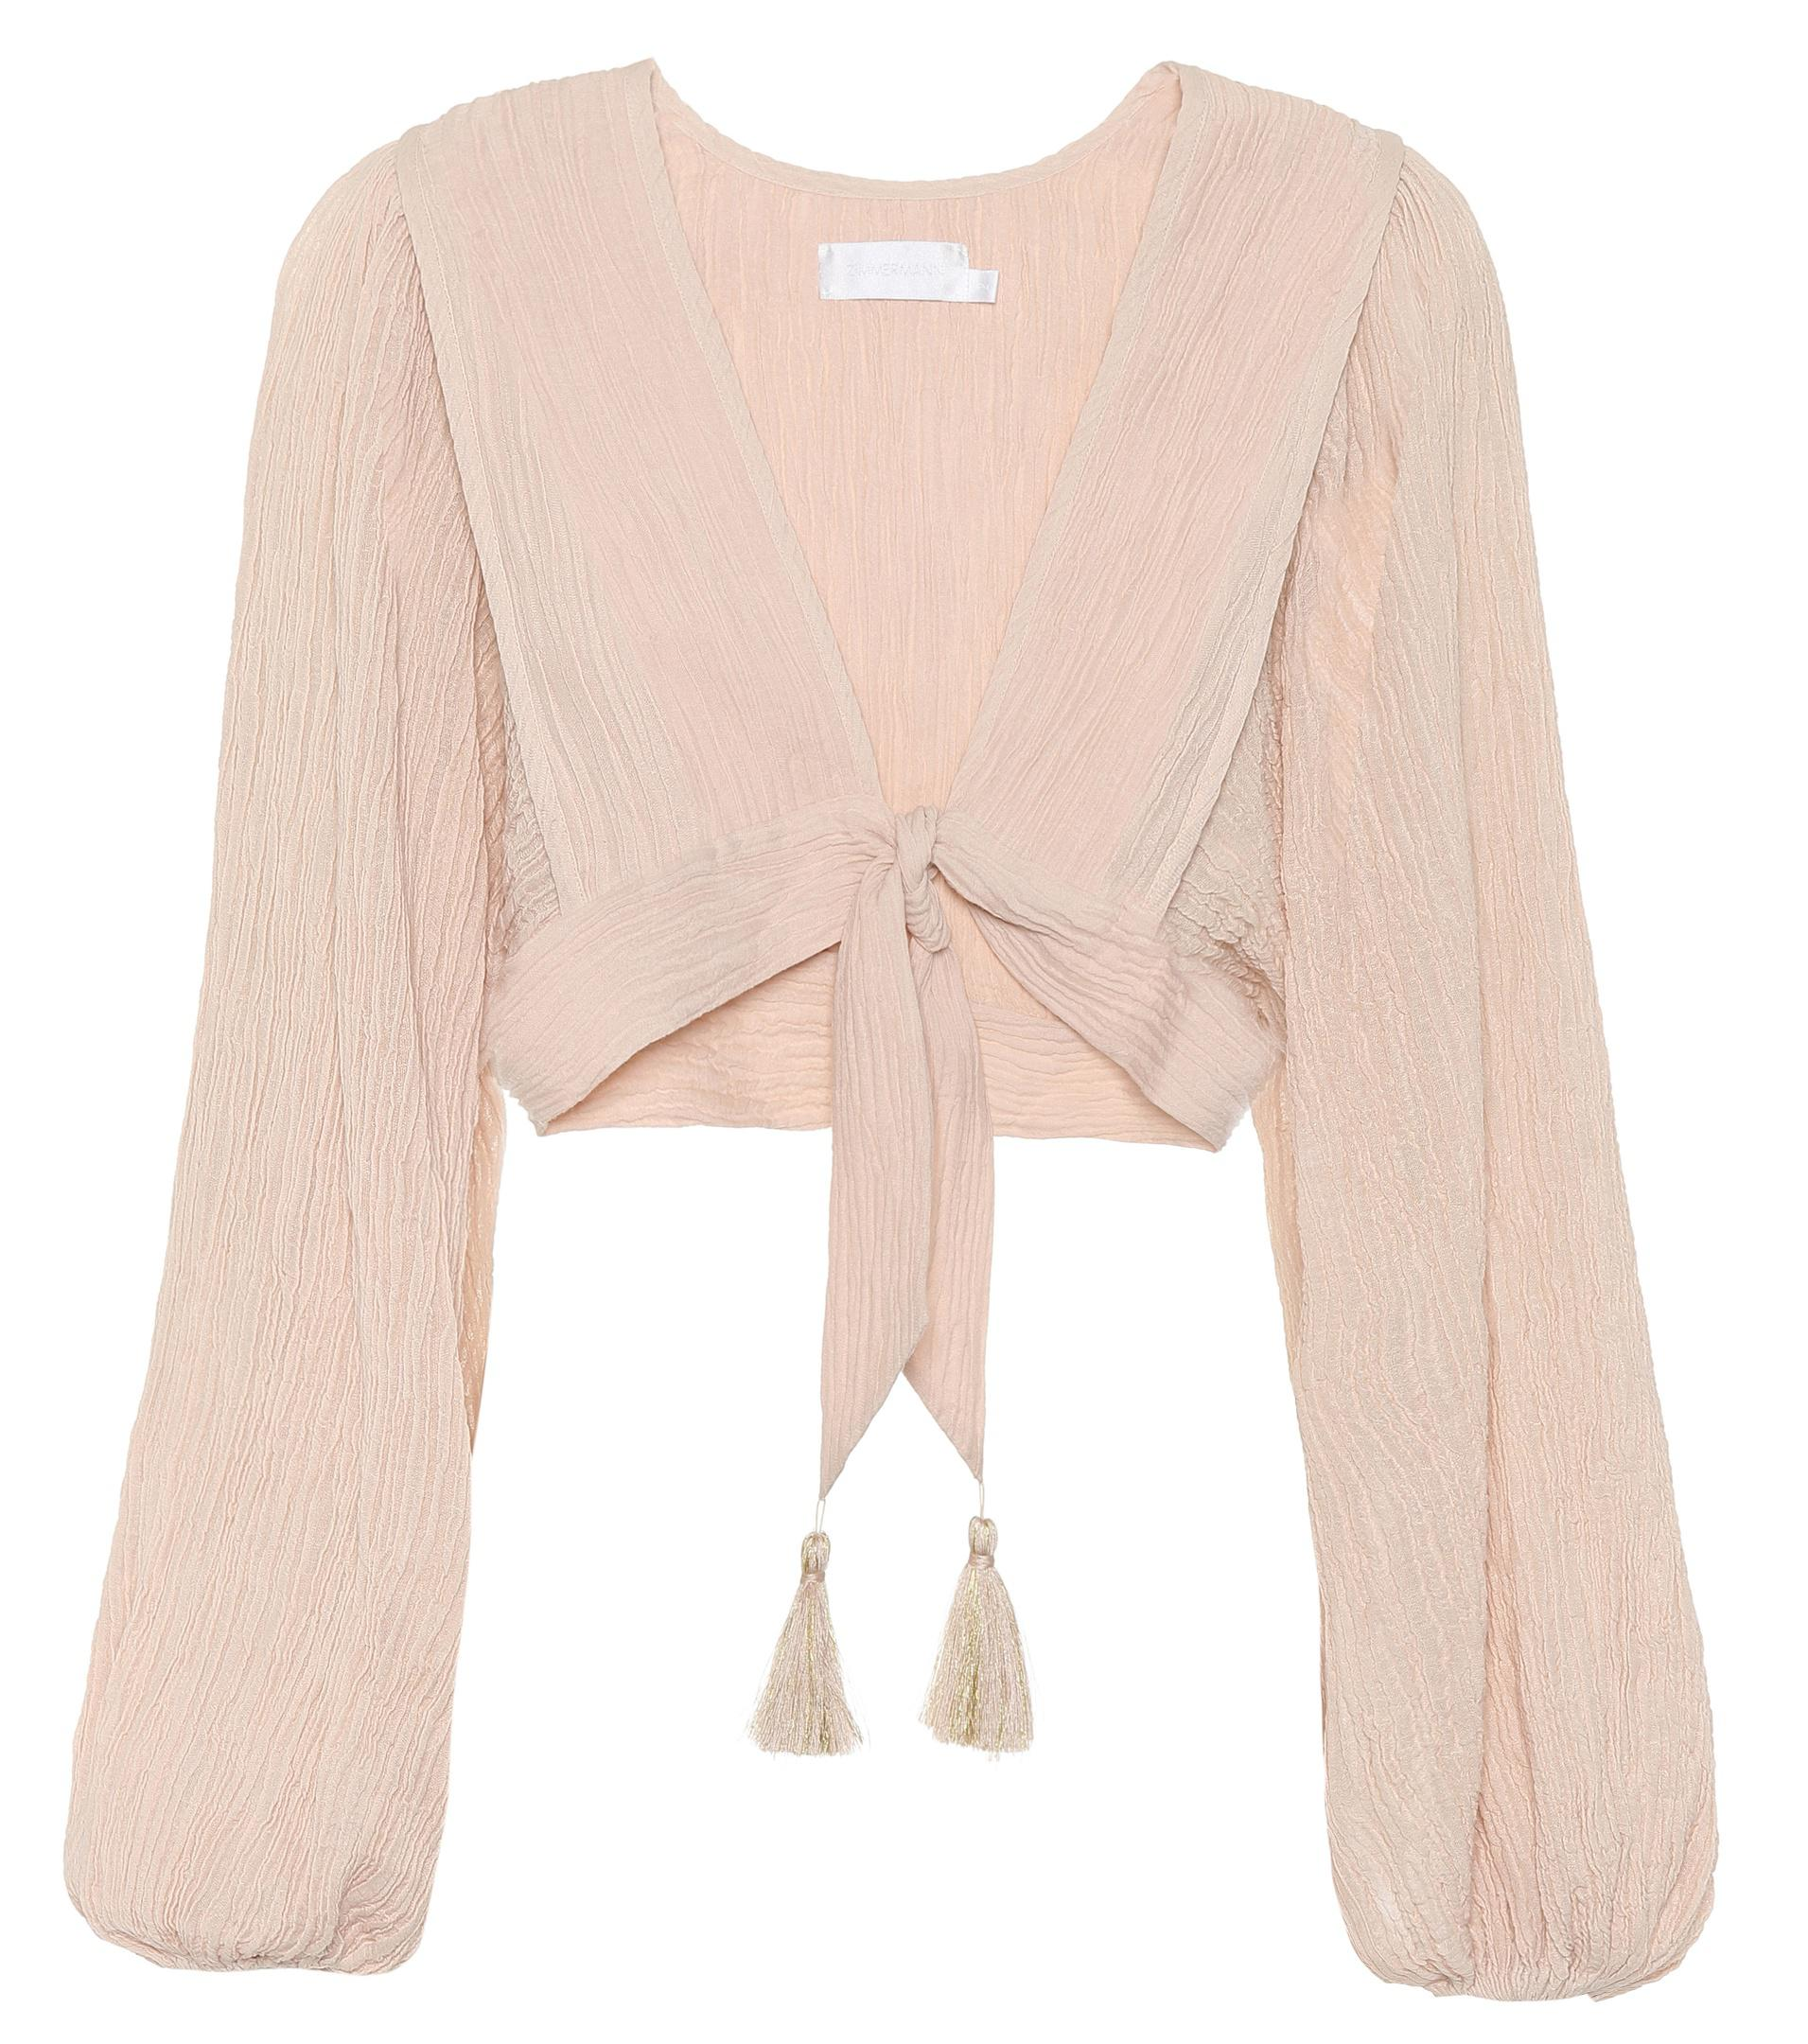 Crinkled cotton-blend tie top Zimmermann Buy Cheap Fashionable Free Shipping 100% Original Buy Cheap Exclusive xUzdn